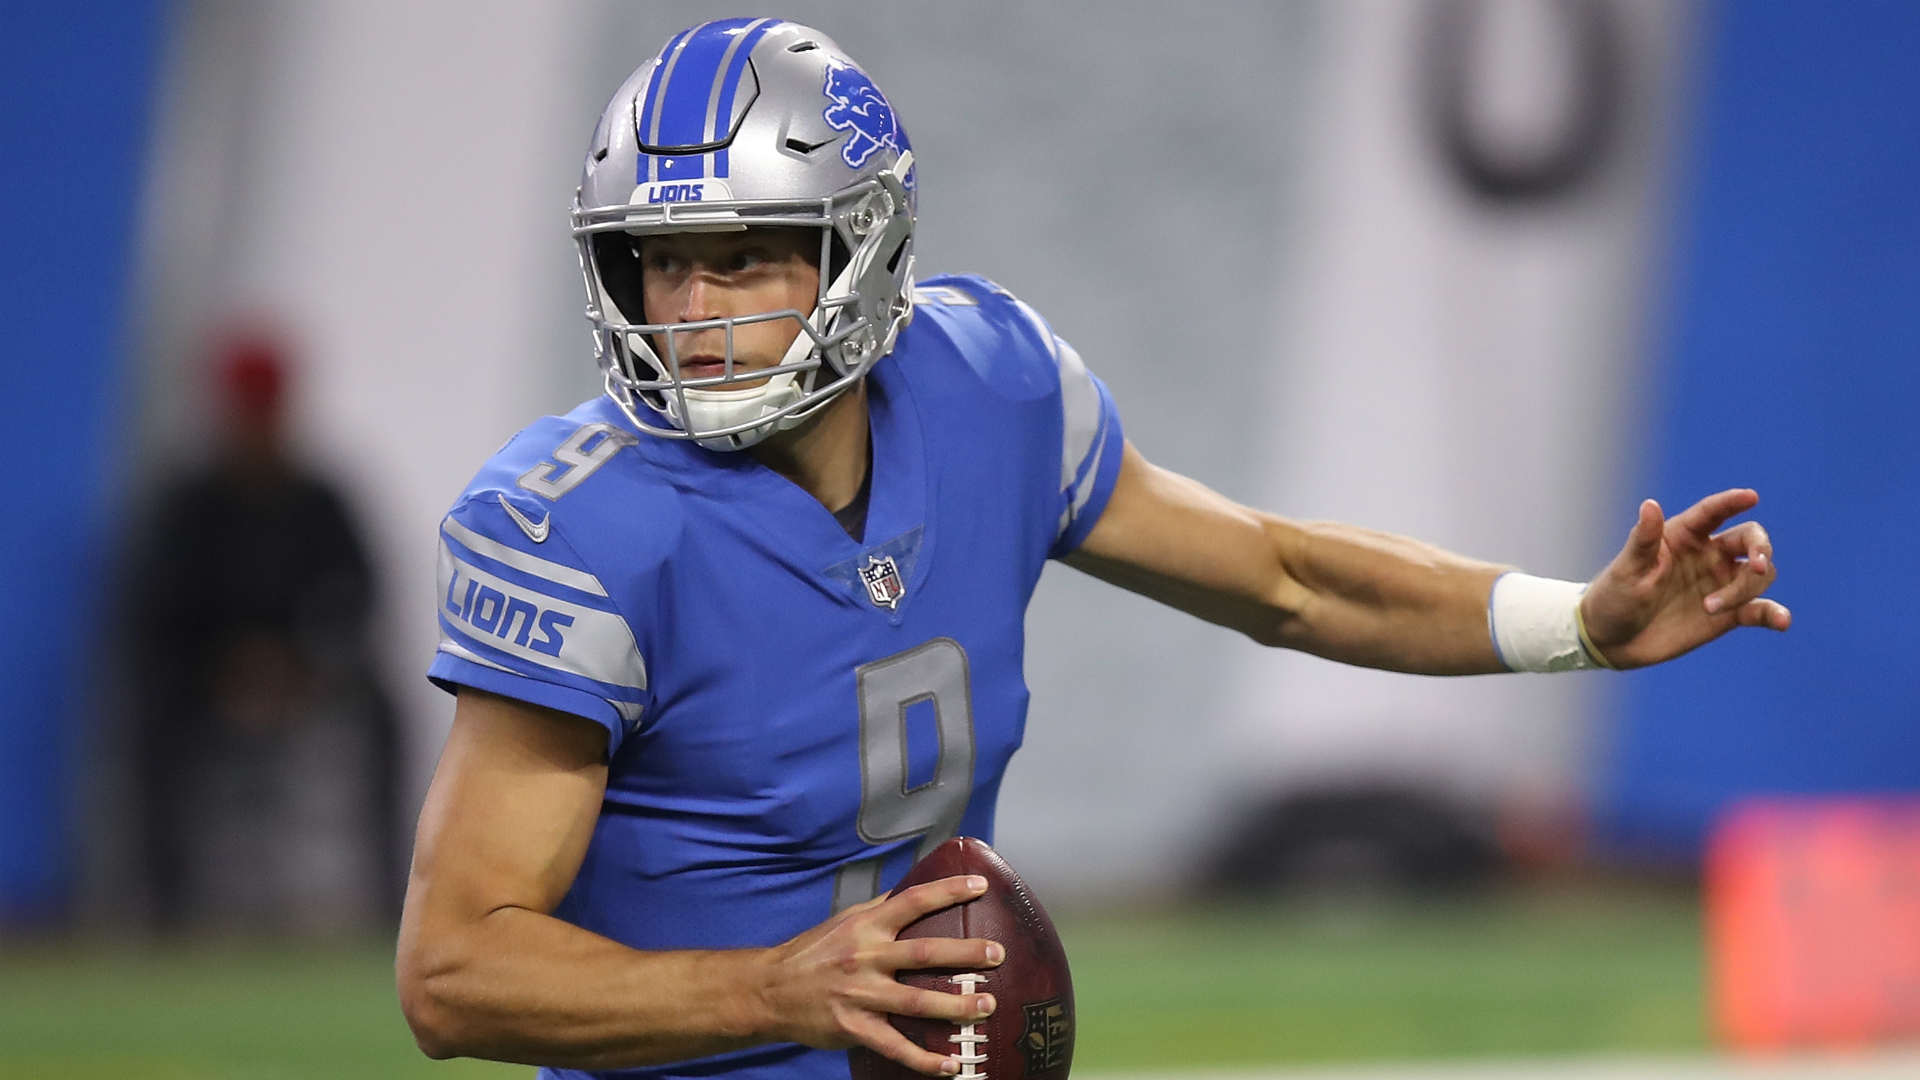 Lions Make QB Matthew Stafford Highest-Paid Player In NFL History